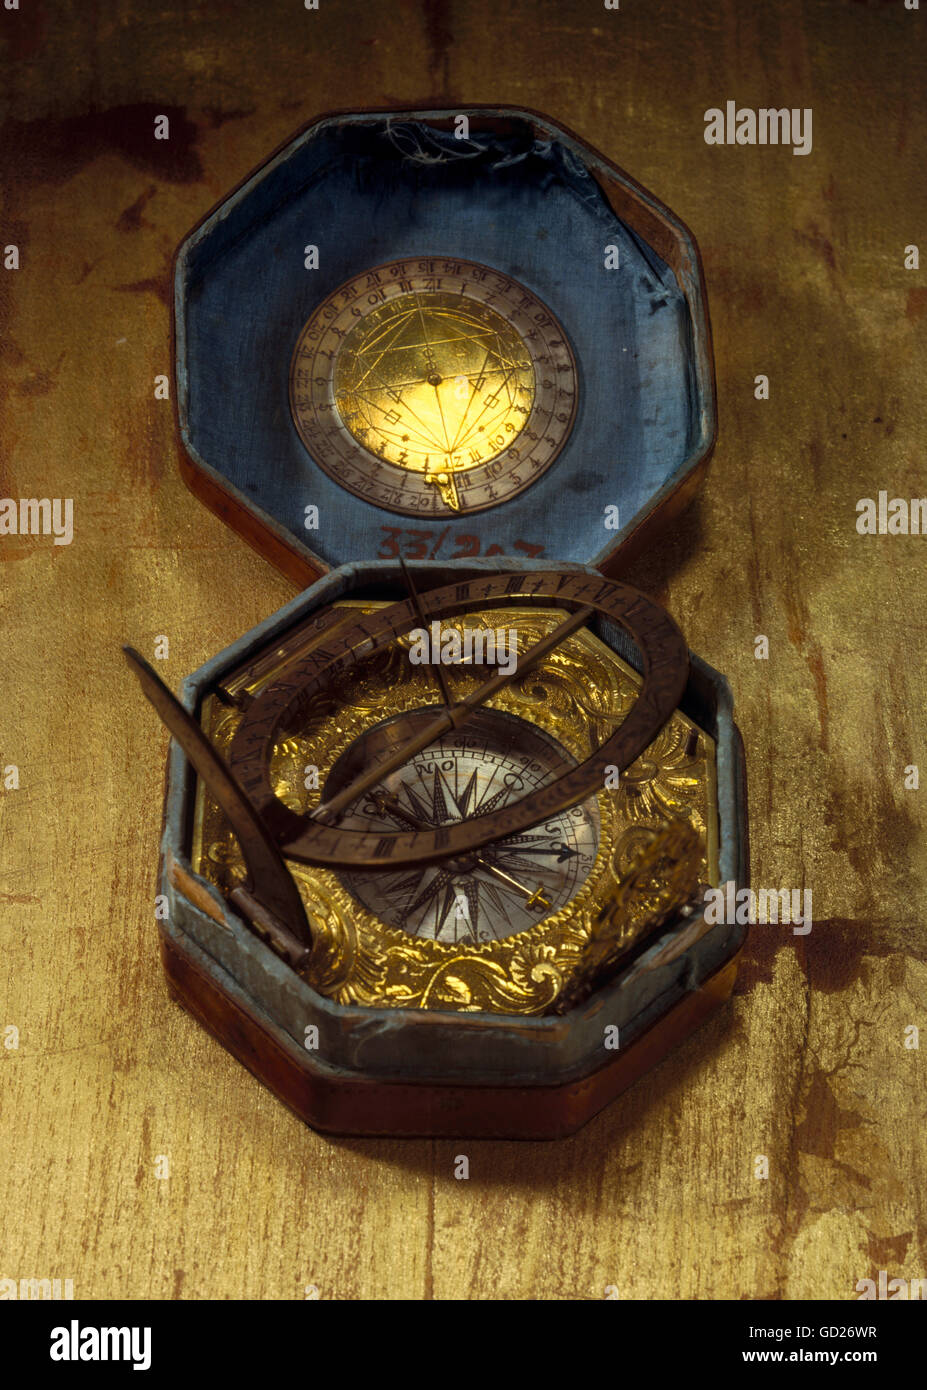 clocks, sundials, sundial in octagonal leather case, diameter: 9,3 cm, Augsburg or Nuremberg, Germany, 2nd half - Stock Image